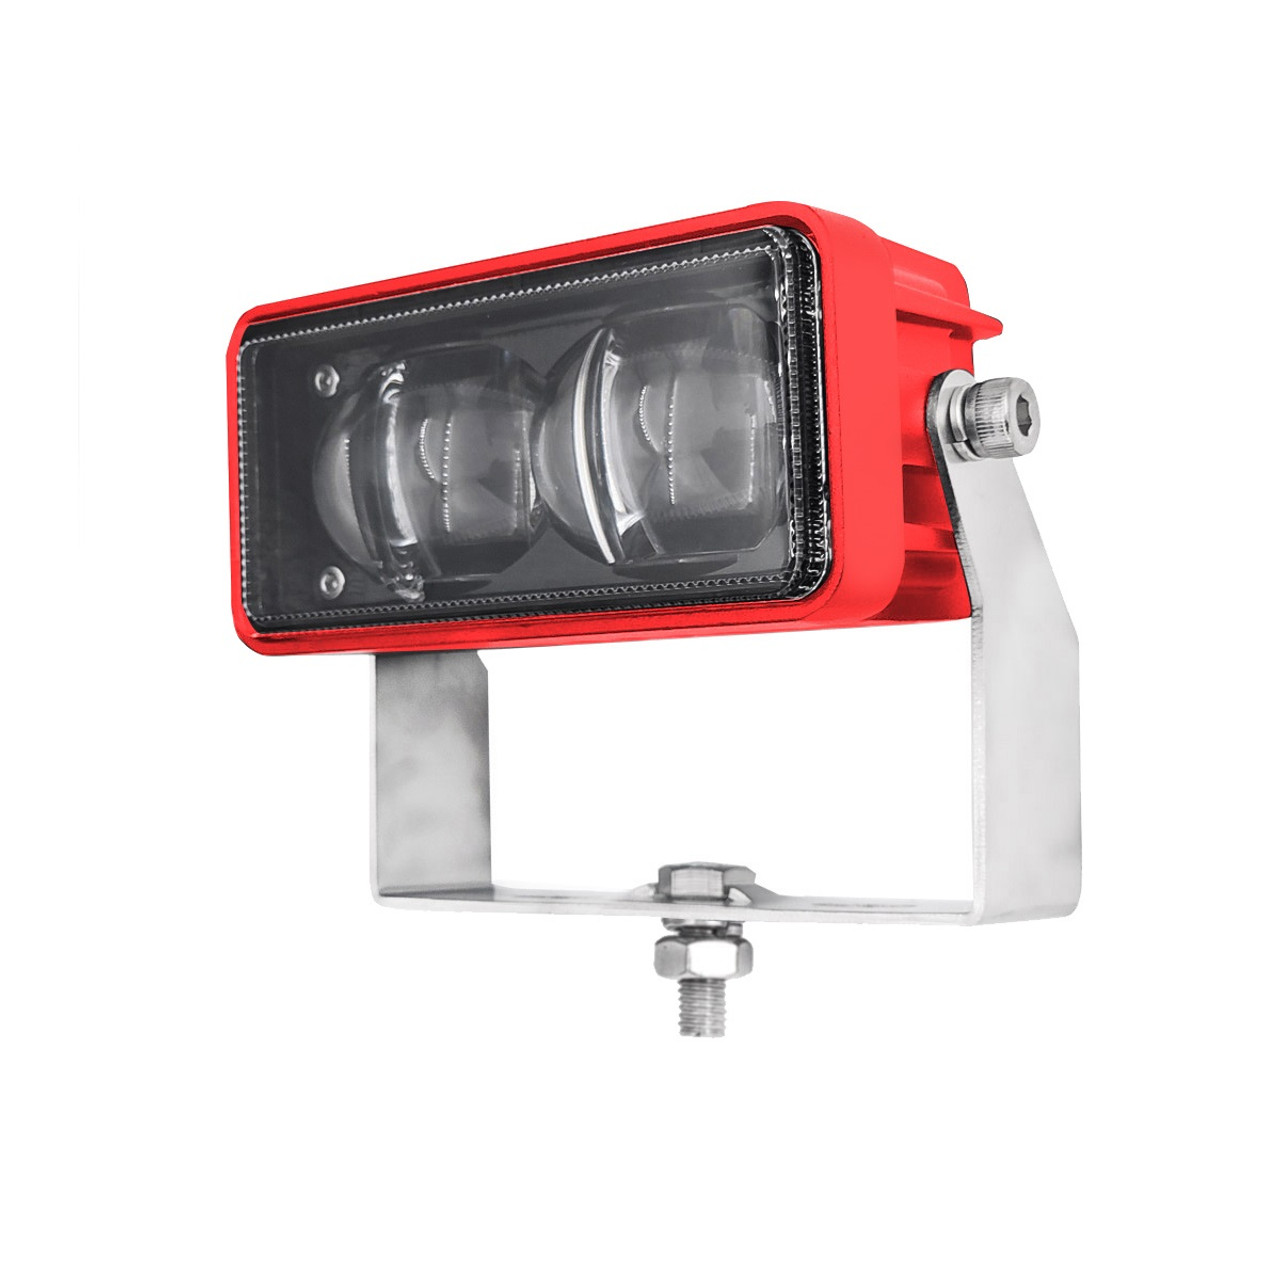 New 30 watt Workplace Safety Halo Systems with Smart Technology  by Ultimate LED Australia The brightest performing red line light on the market